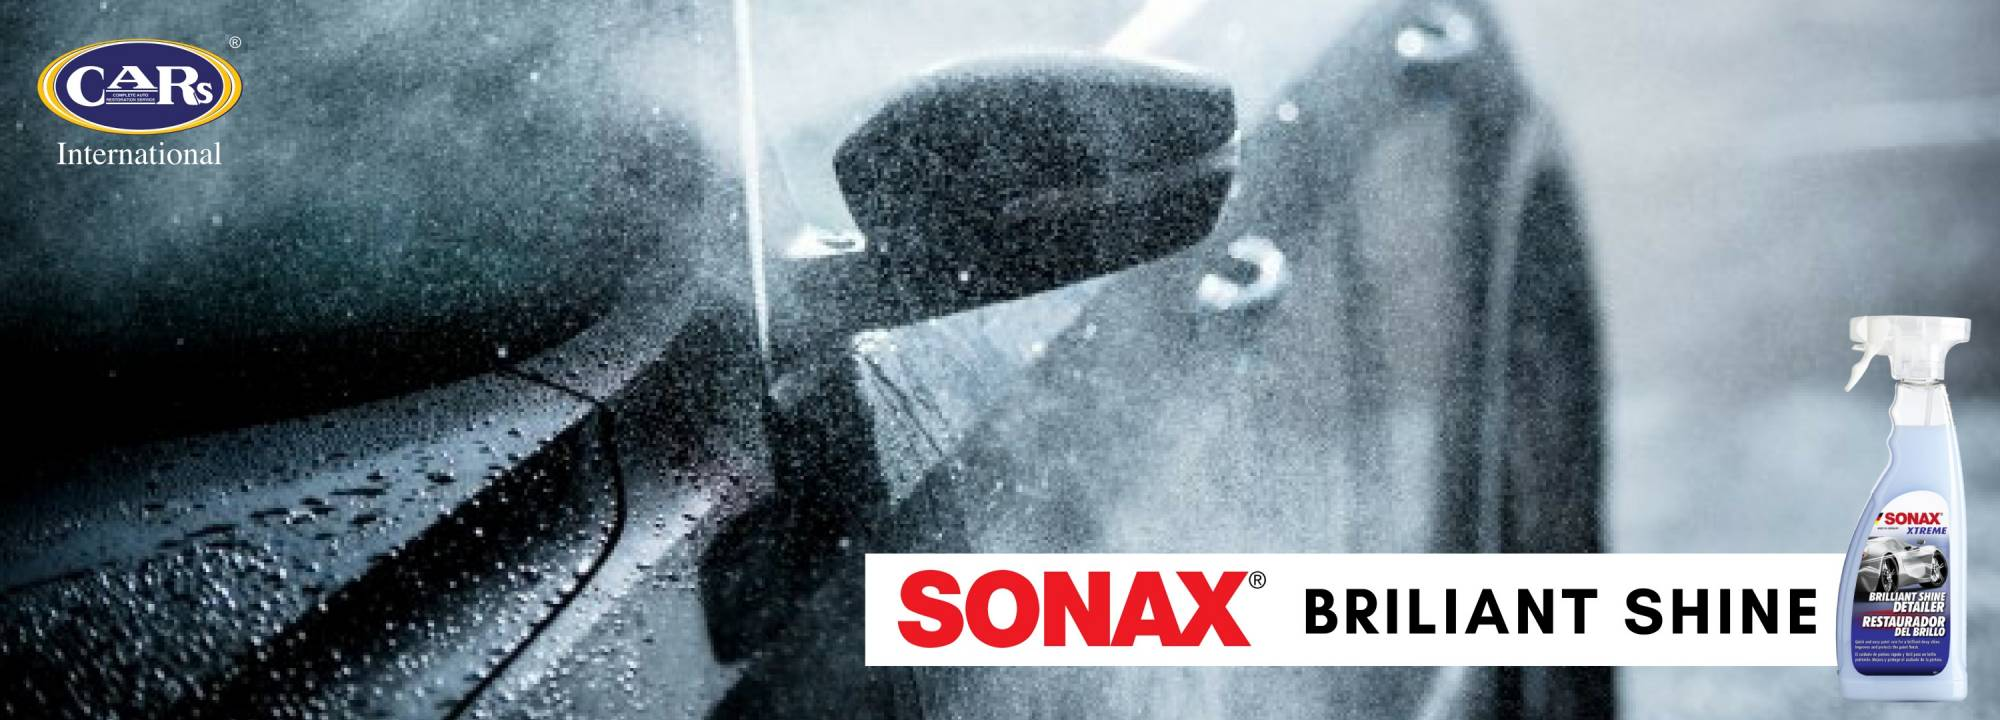 Sonax brilliant shine